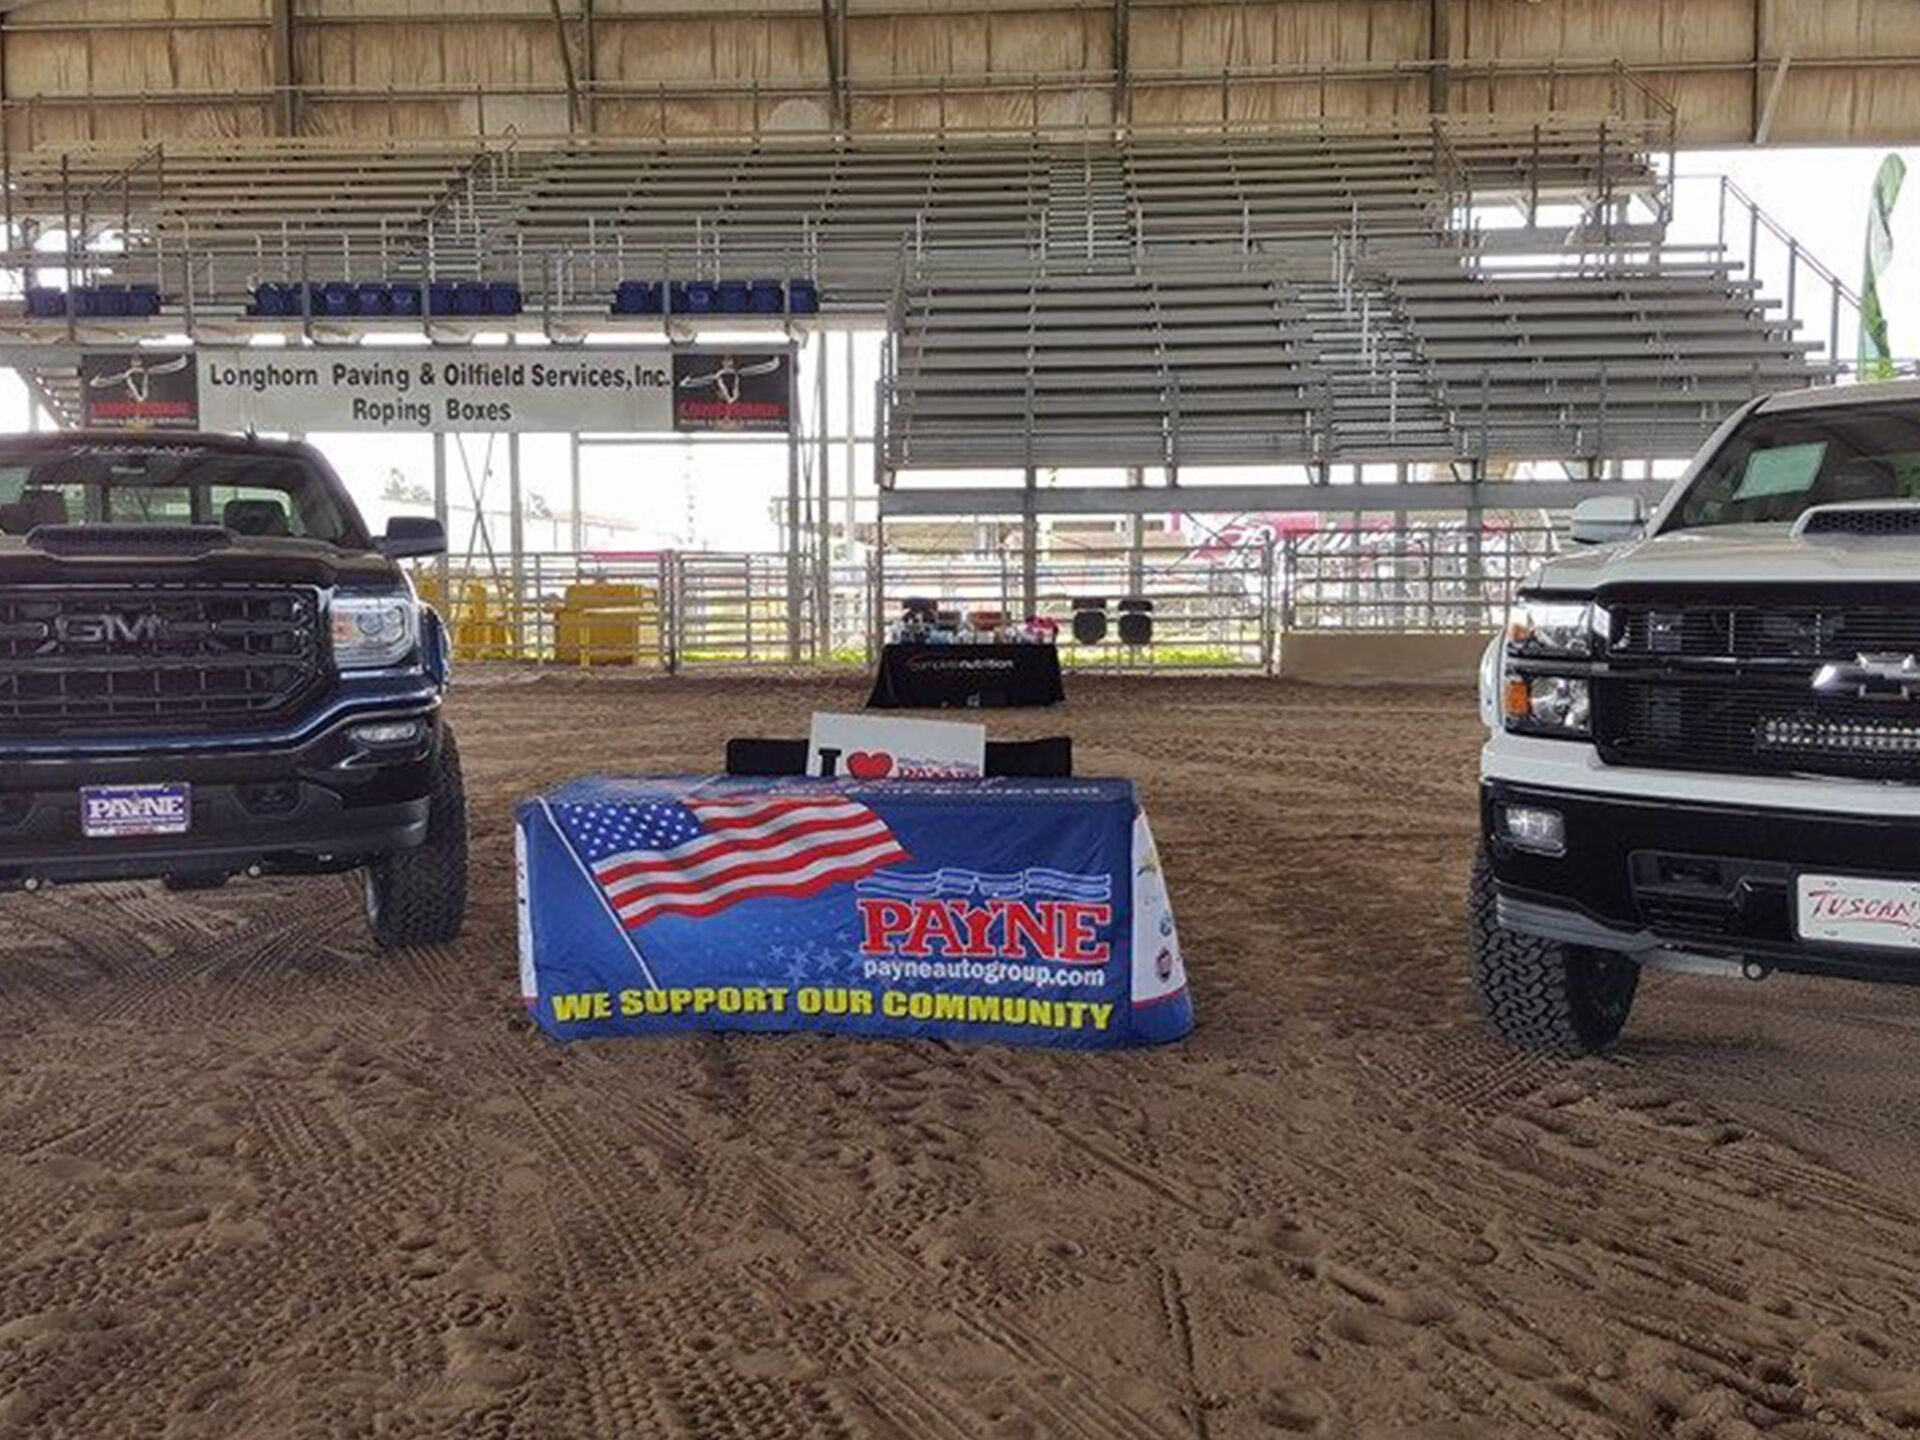 Payne auto group rodeo arena rio grande livestock show for Payne motors mission tx